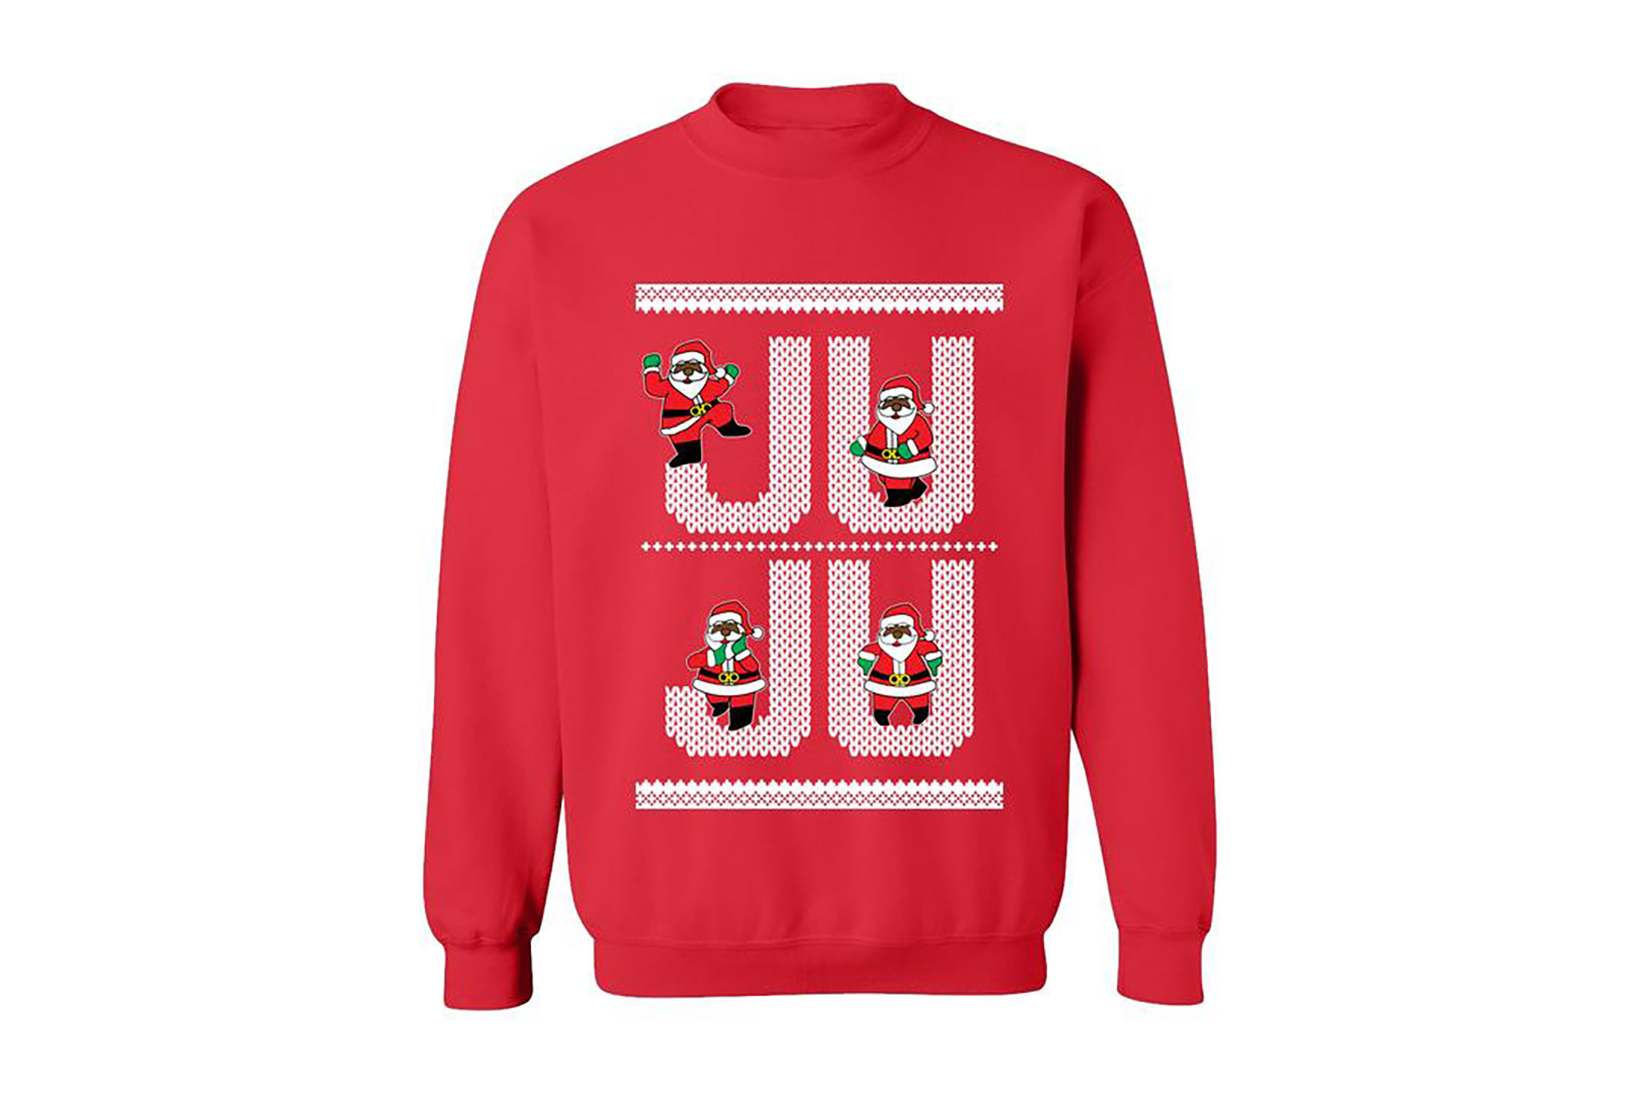 2 Chainz 2016 Dabbin' Santa Jumpers In Black Red Green White